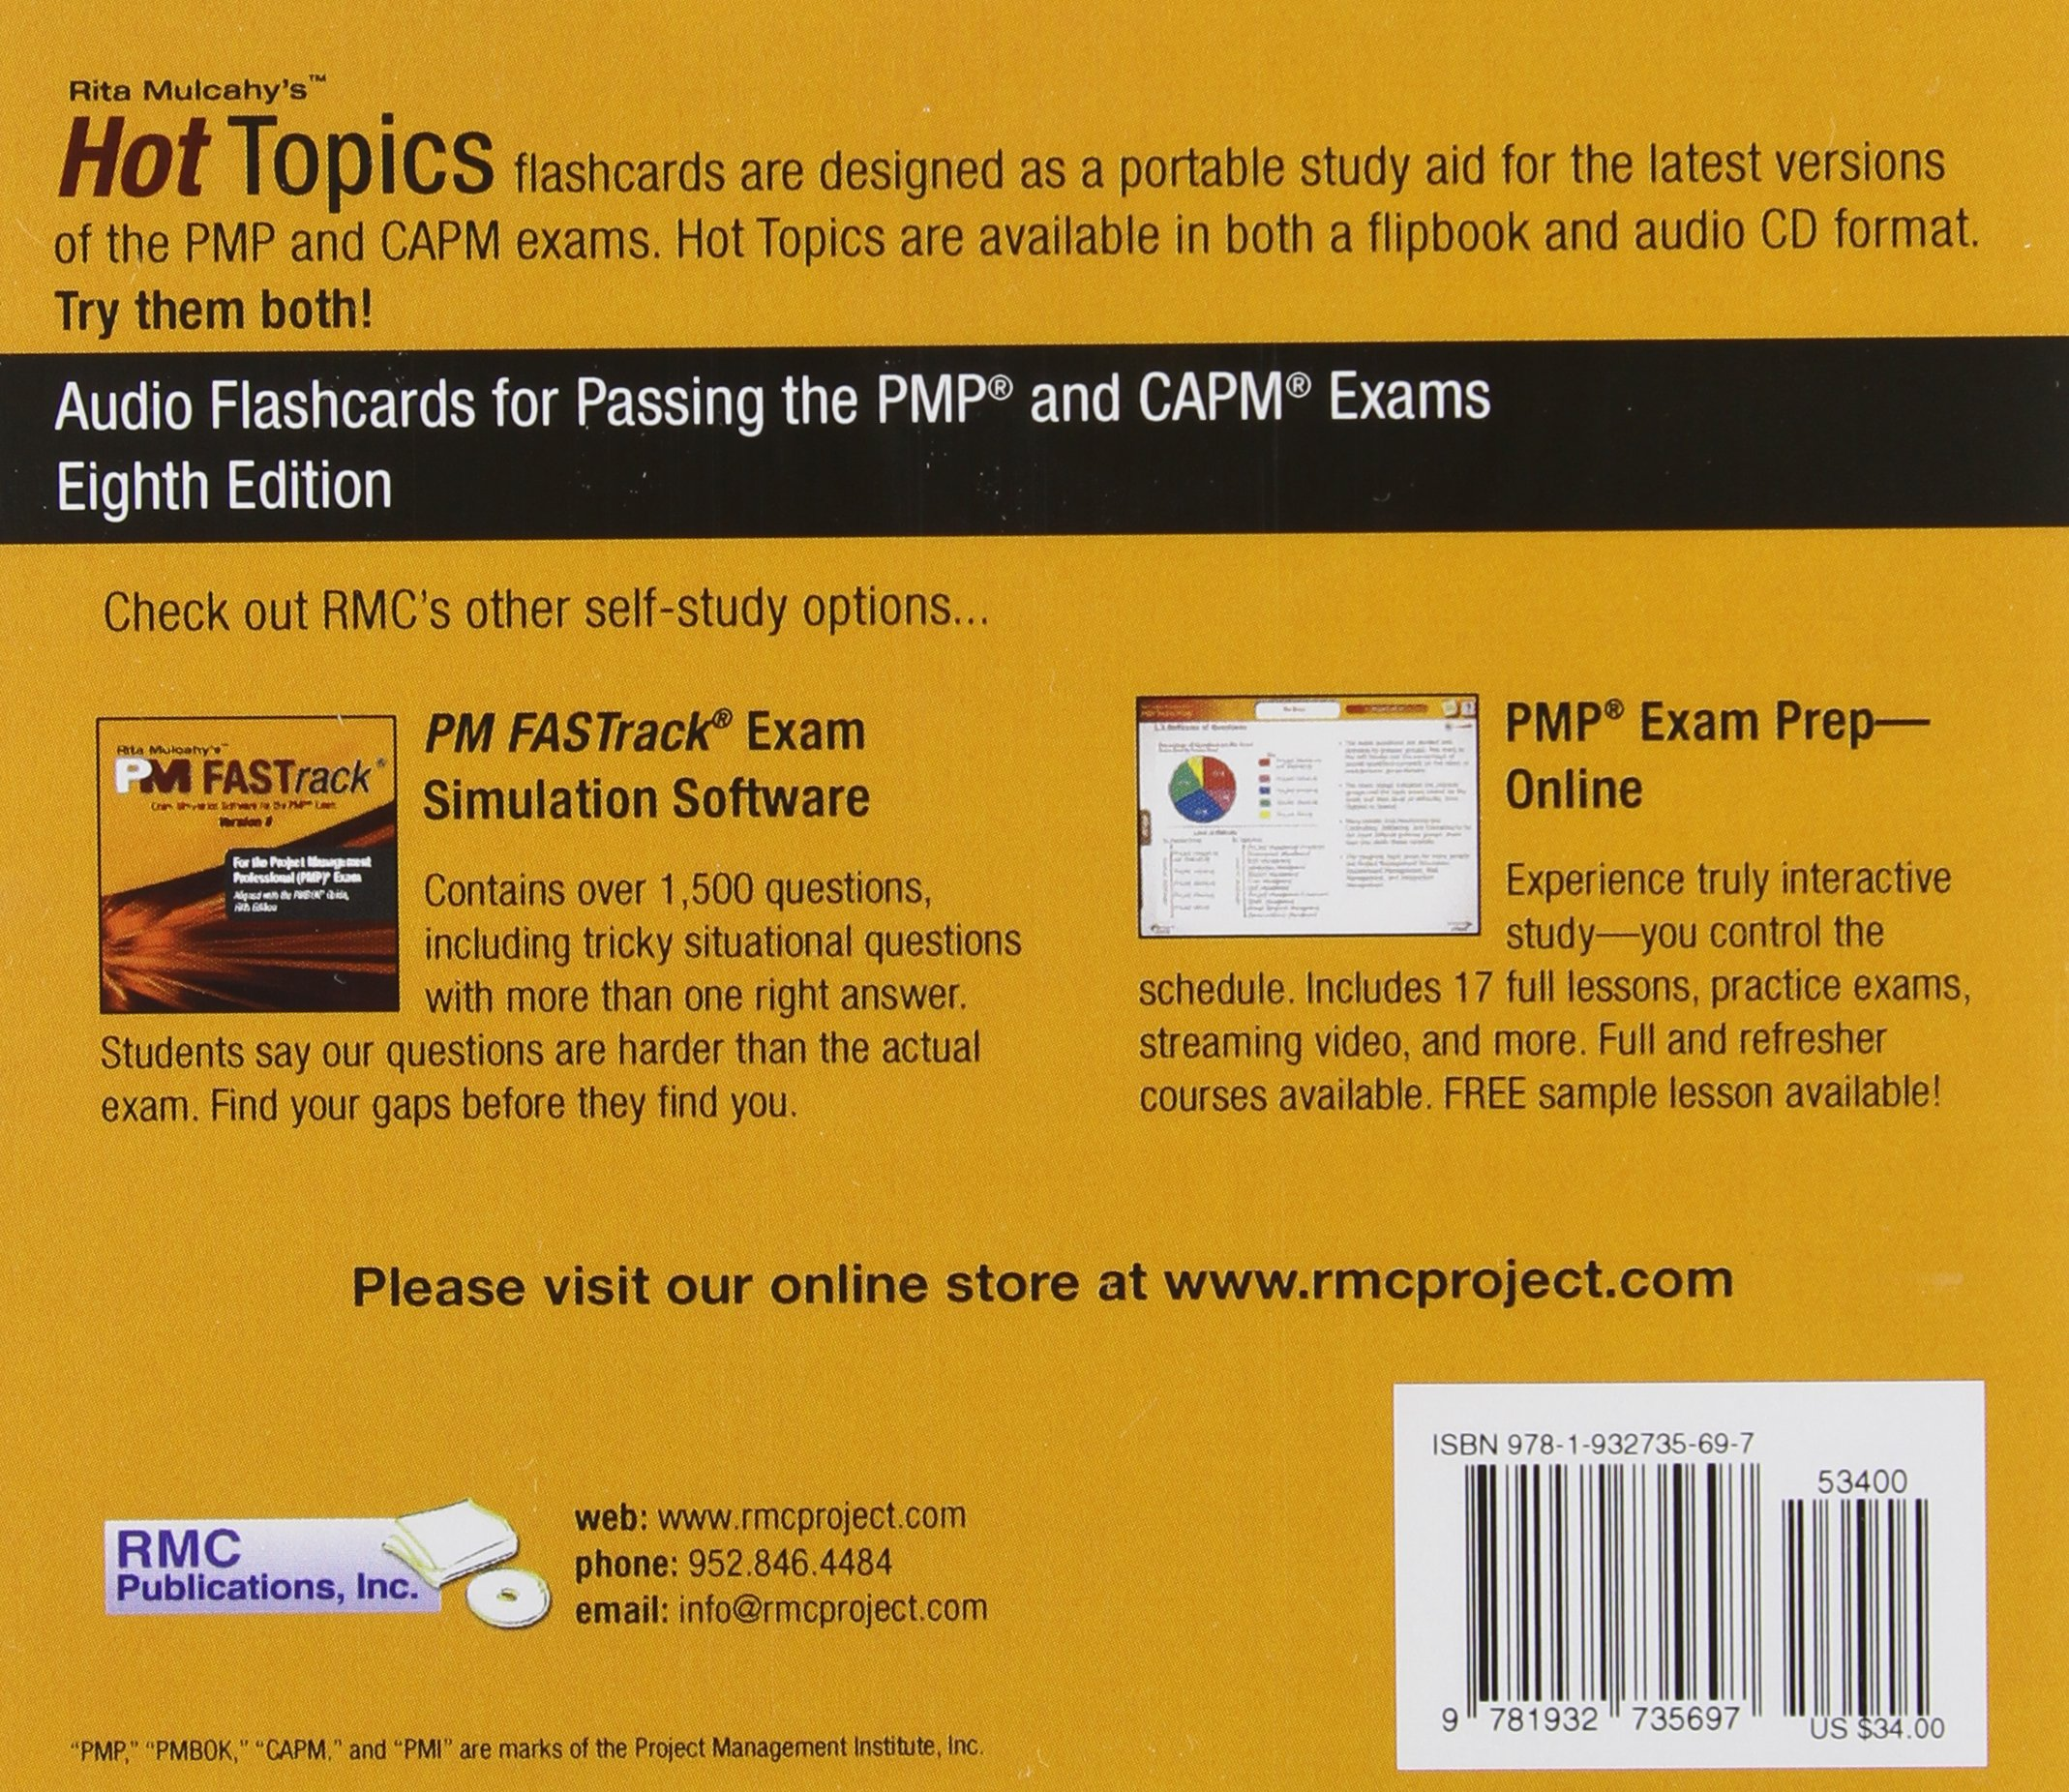 Buy hot topics audio flashcards for passing the pmp and capm buy hot topics audio flashcards for passing the pmp and capm exams book online at low prices in india hot topics audio flashcards for passing the pmp 1betcityfo Images